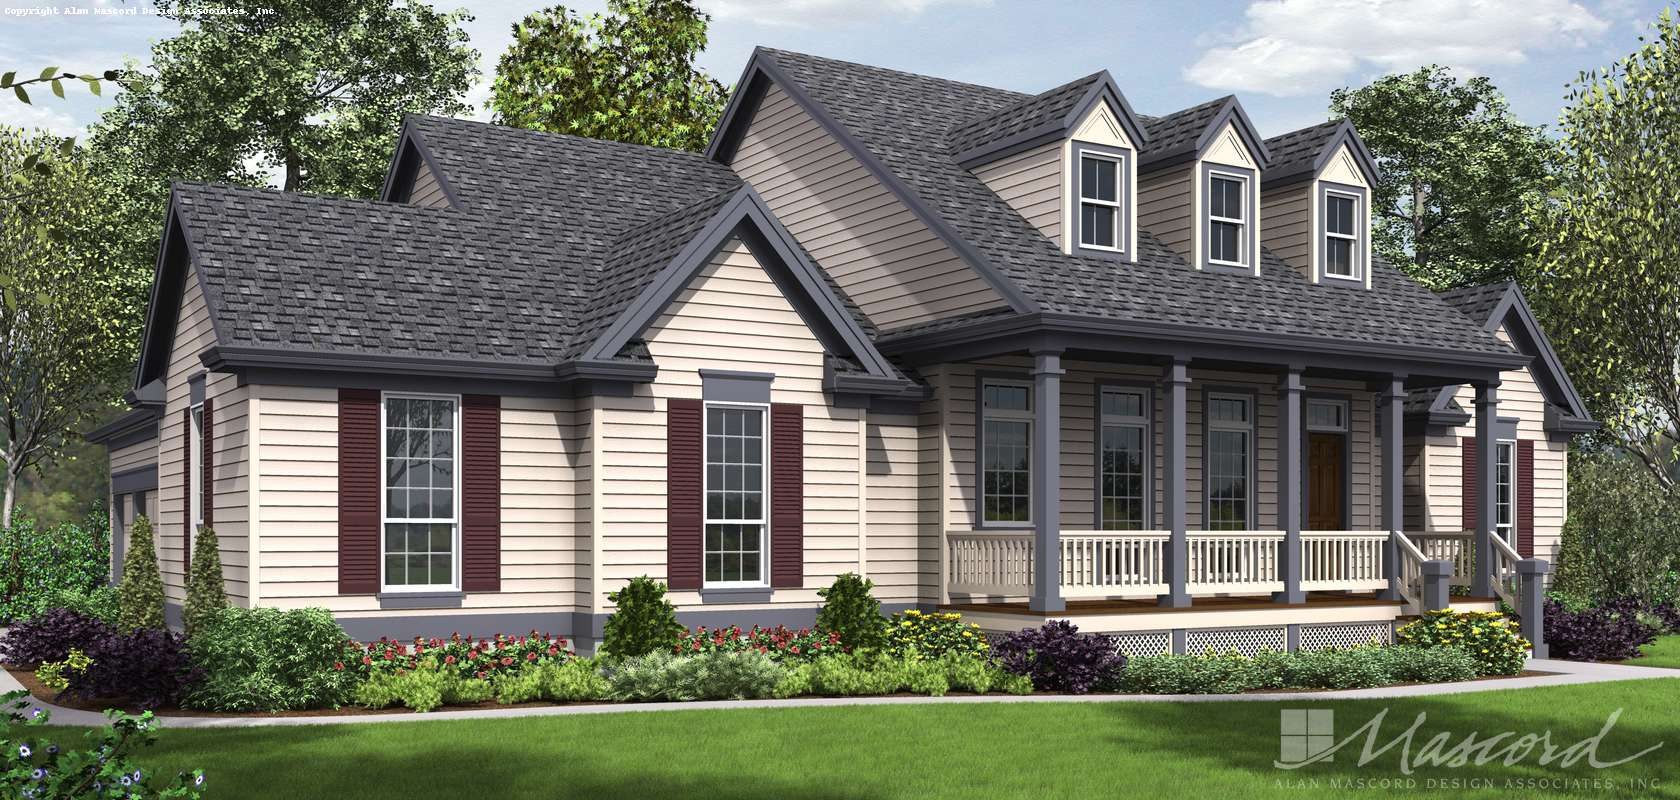 Mascord House Plan B1230: The Renville